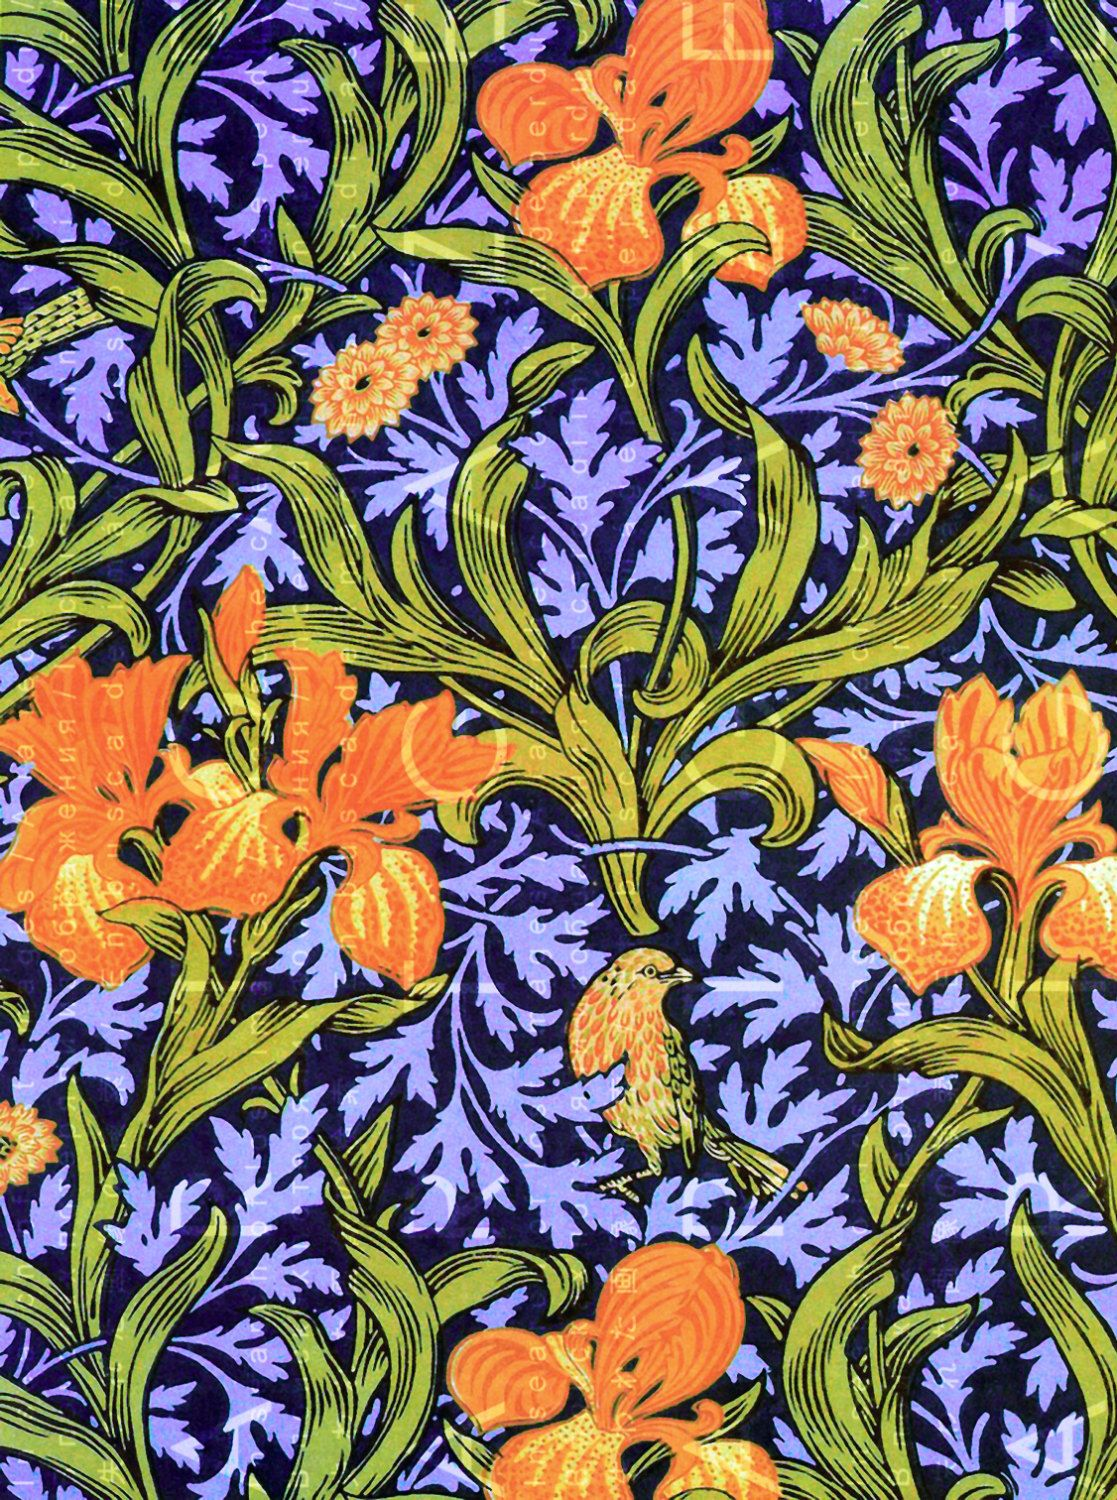 William Morris Wall Paper Design IRIS Flowers & Birds